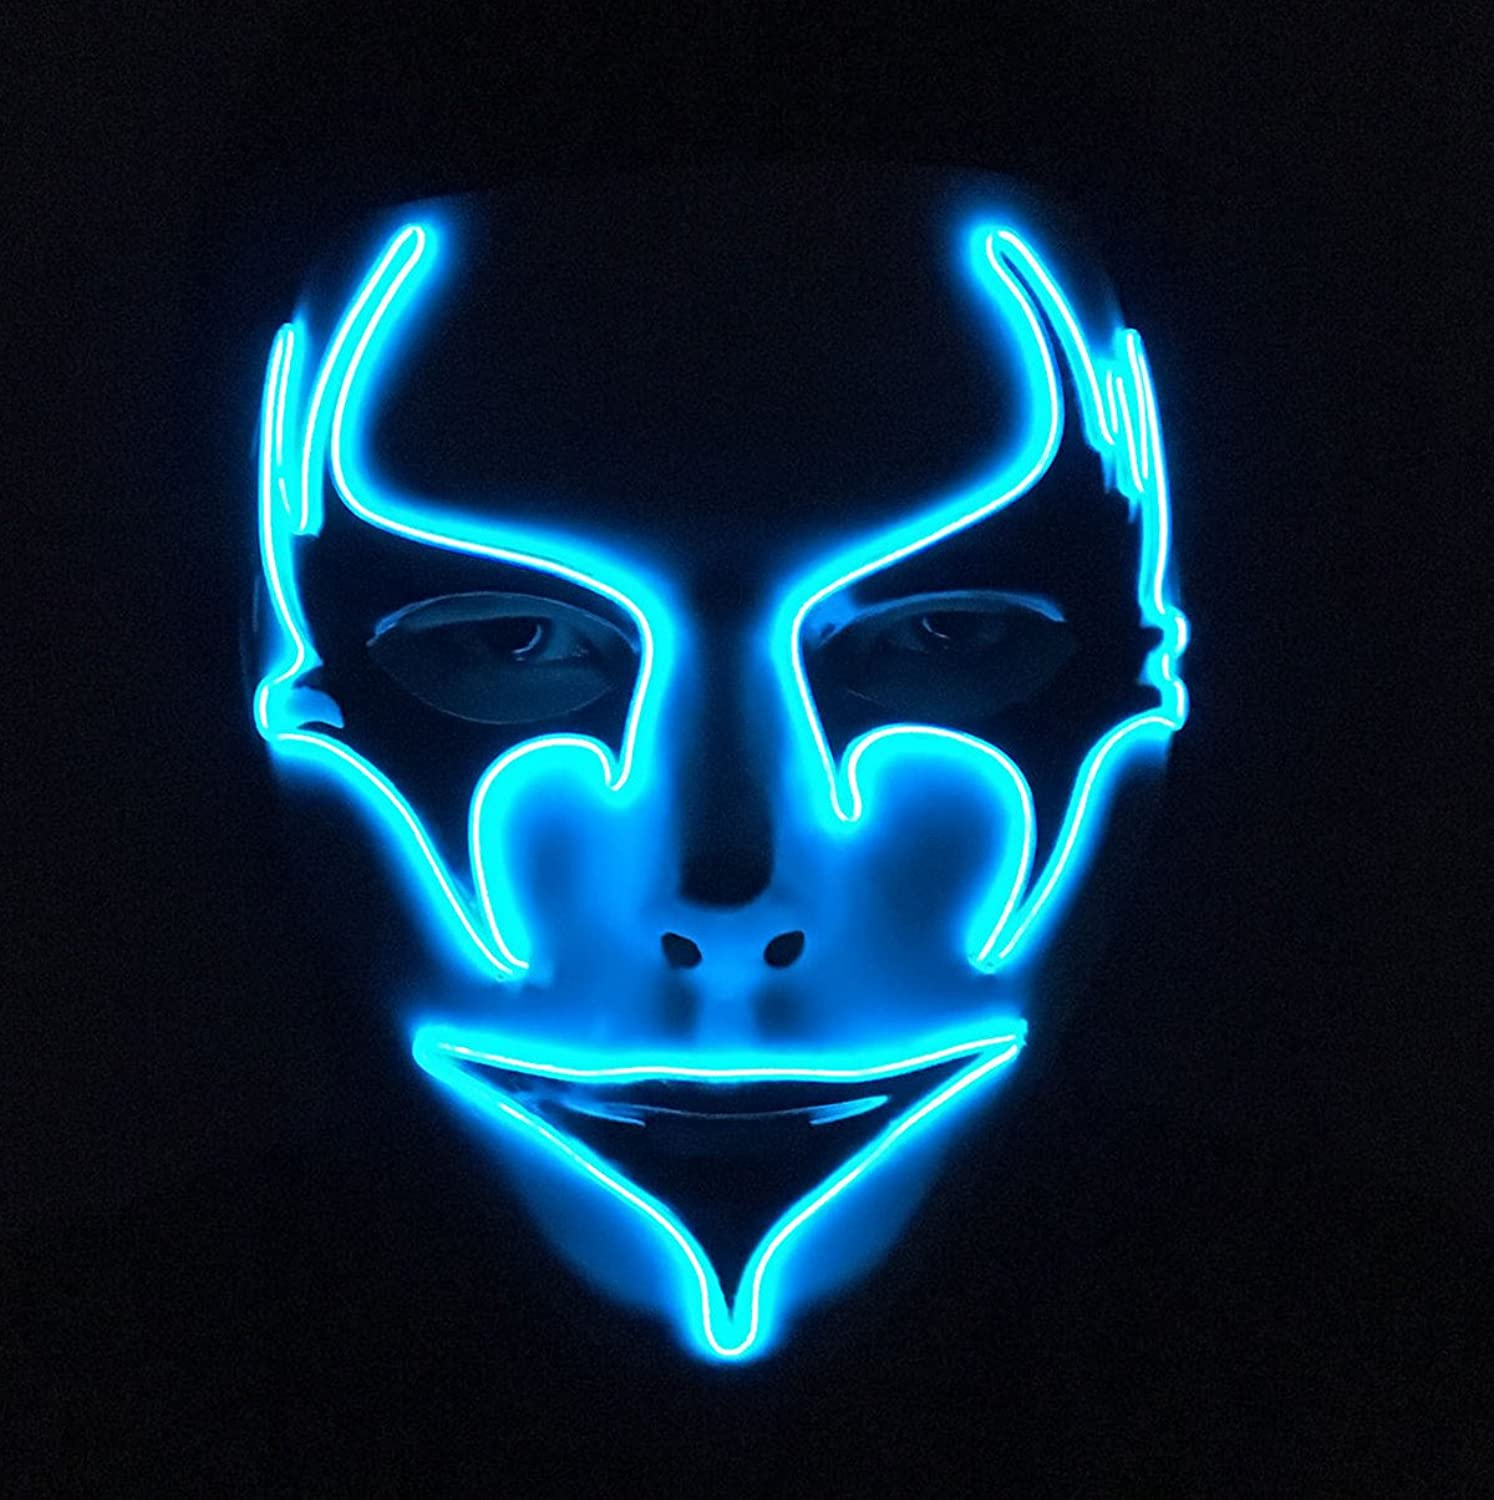 Amazon.com: DevilFace Melbourne Shuffle Light Up Mask EL Wire ...